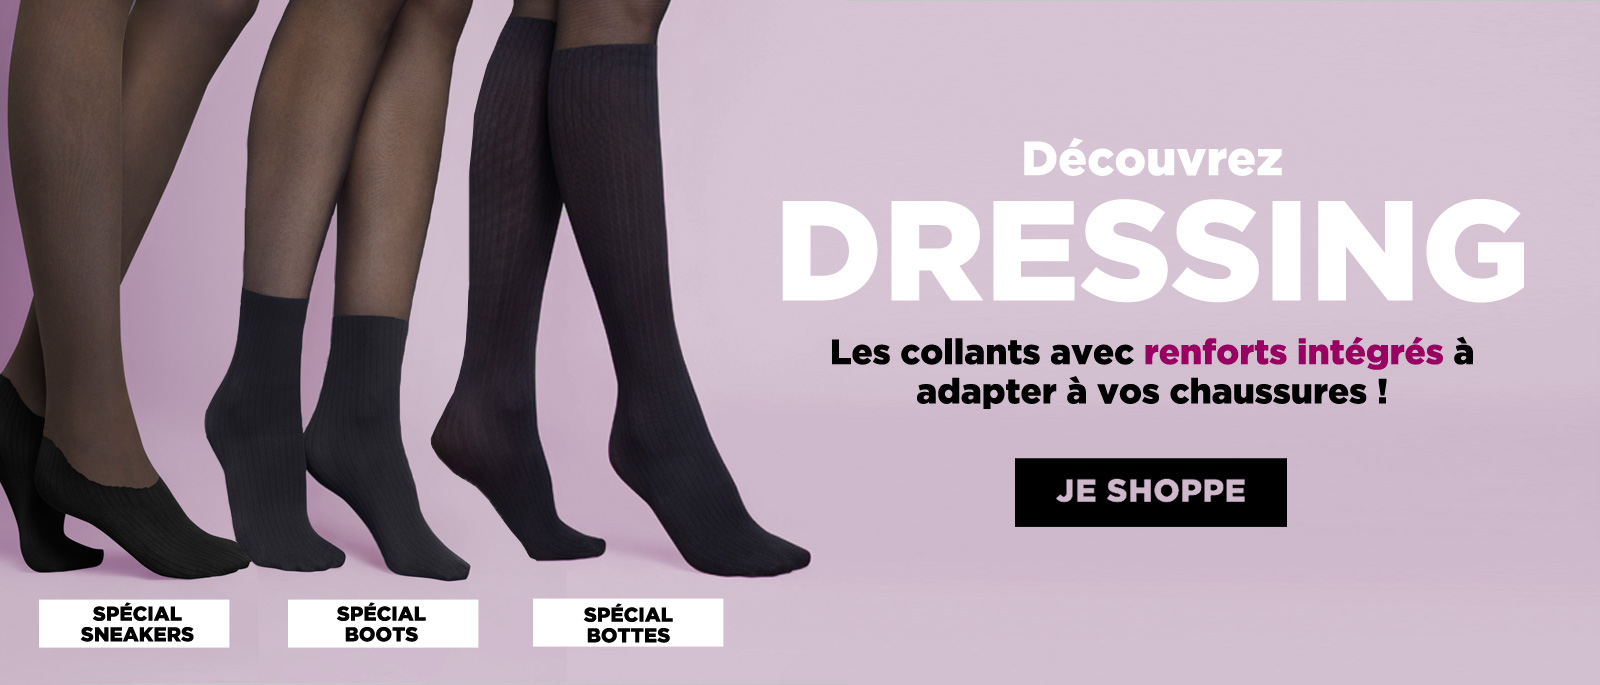 Dressing ! - Le Bourget